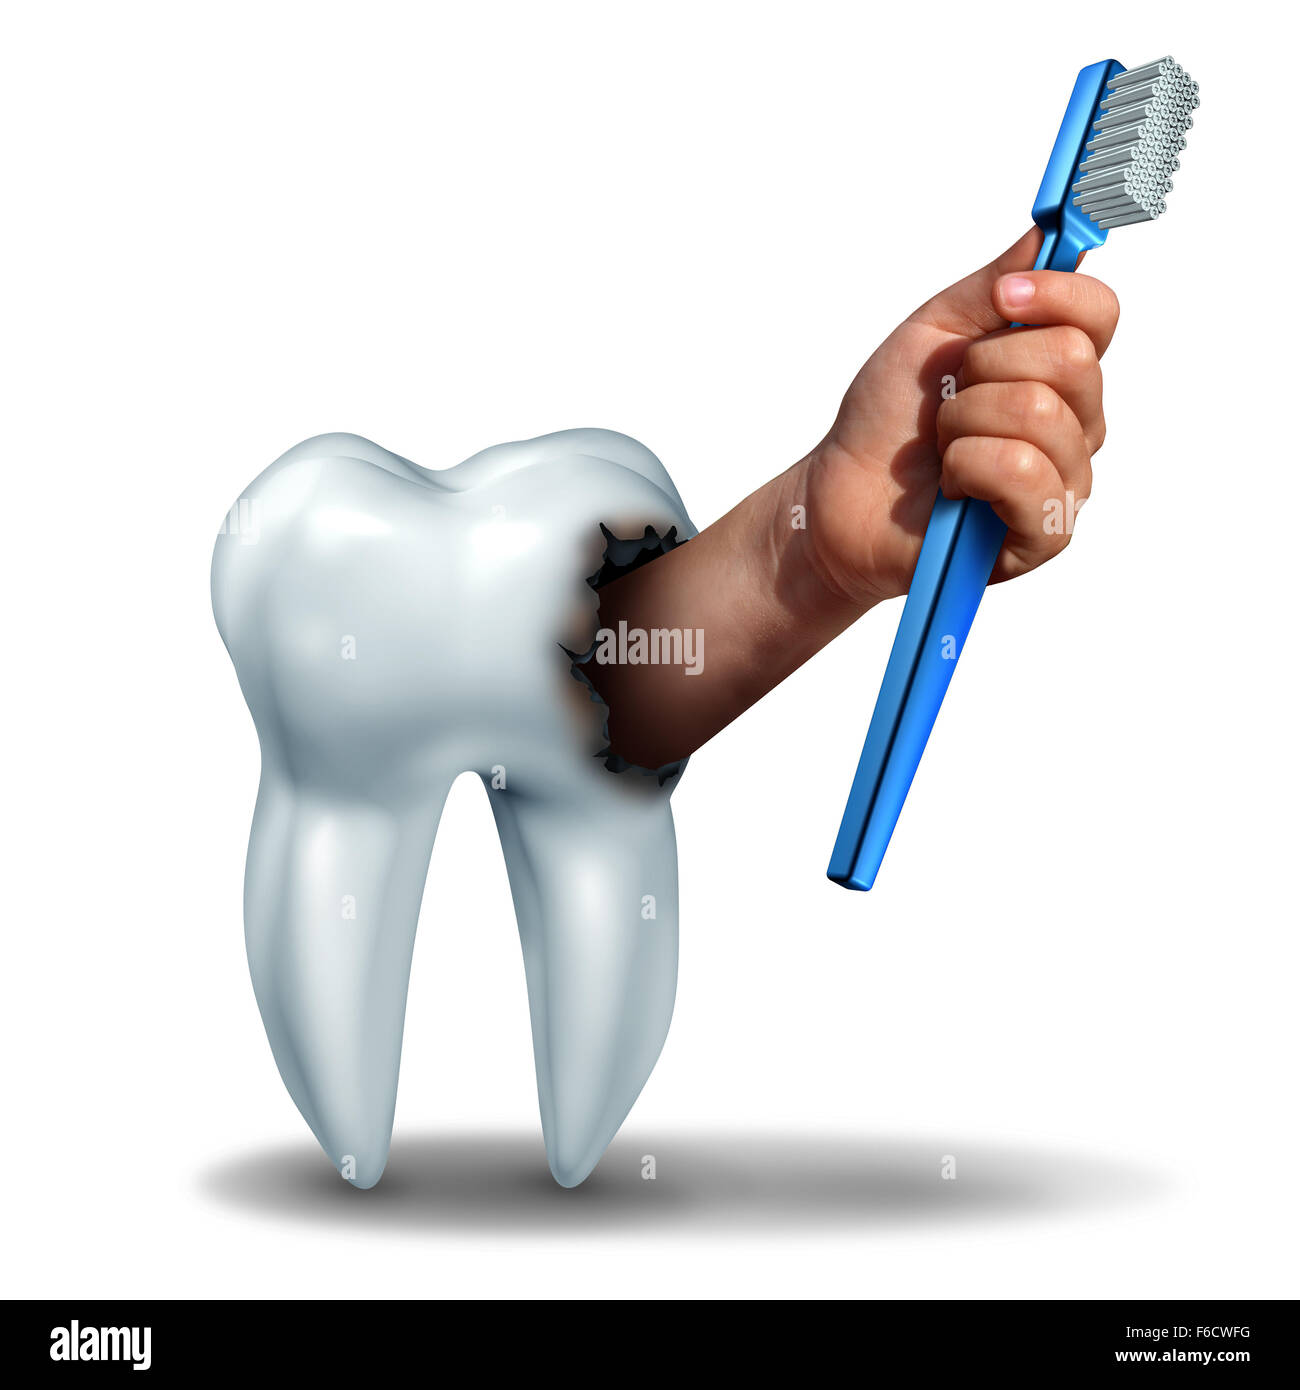 Brushing teeth concept as a human tooth with a cavity as a hand emerging out holding a generic toothbrush or tooth - Stock Image